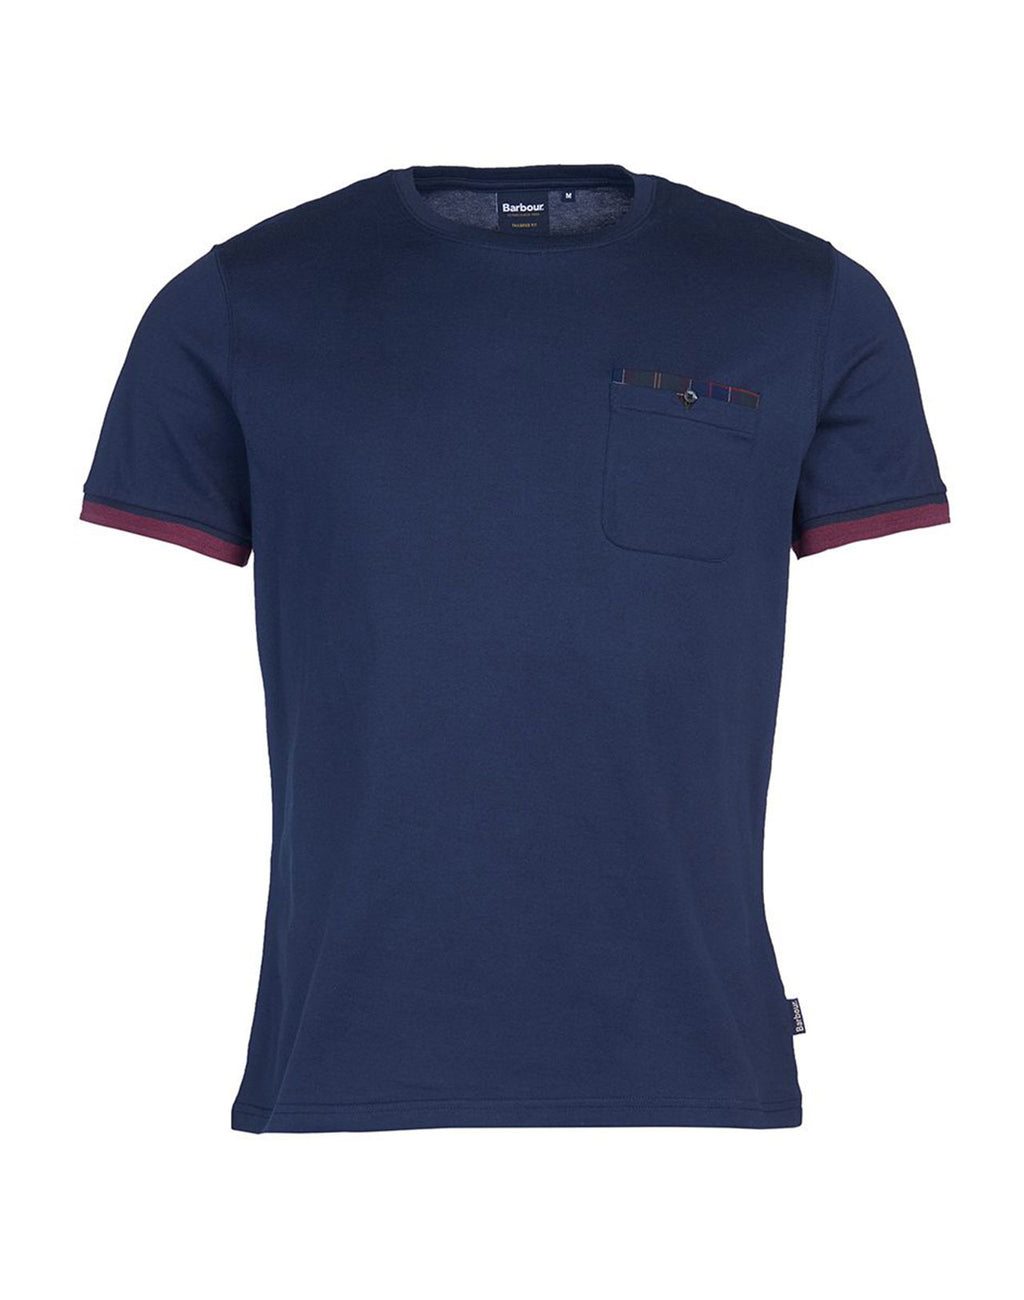 tshirt Bridge navy detail tartan poche poitrine Barbour